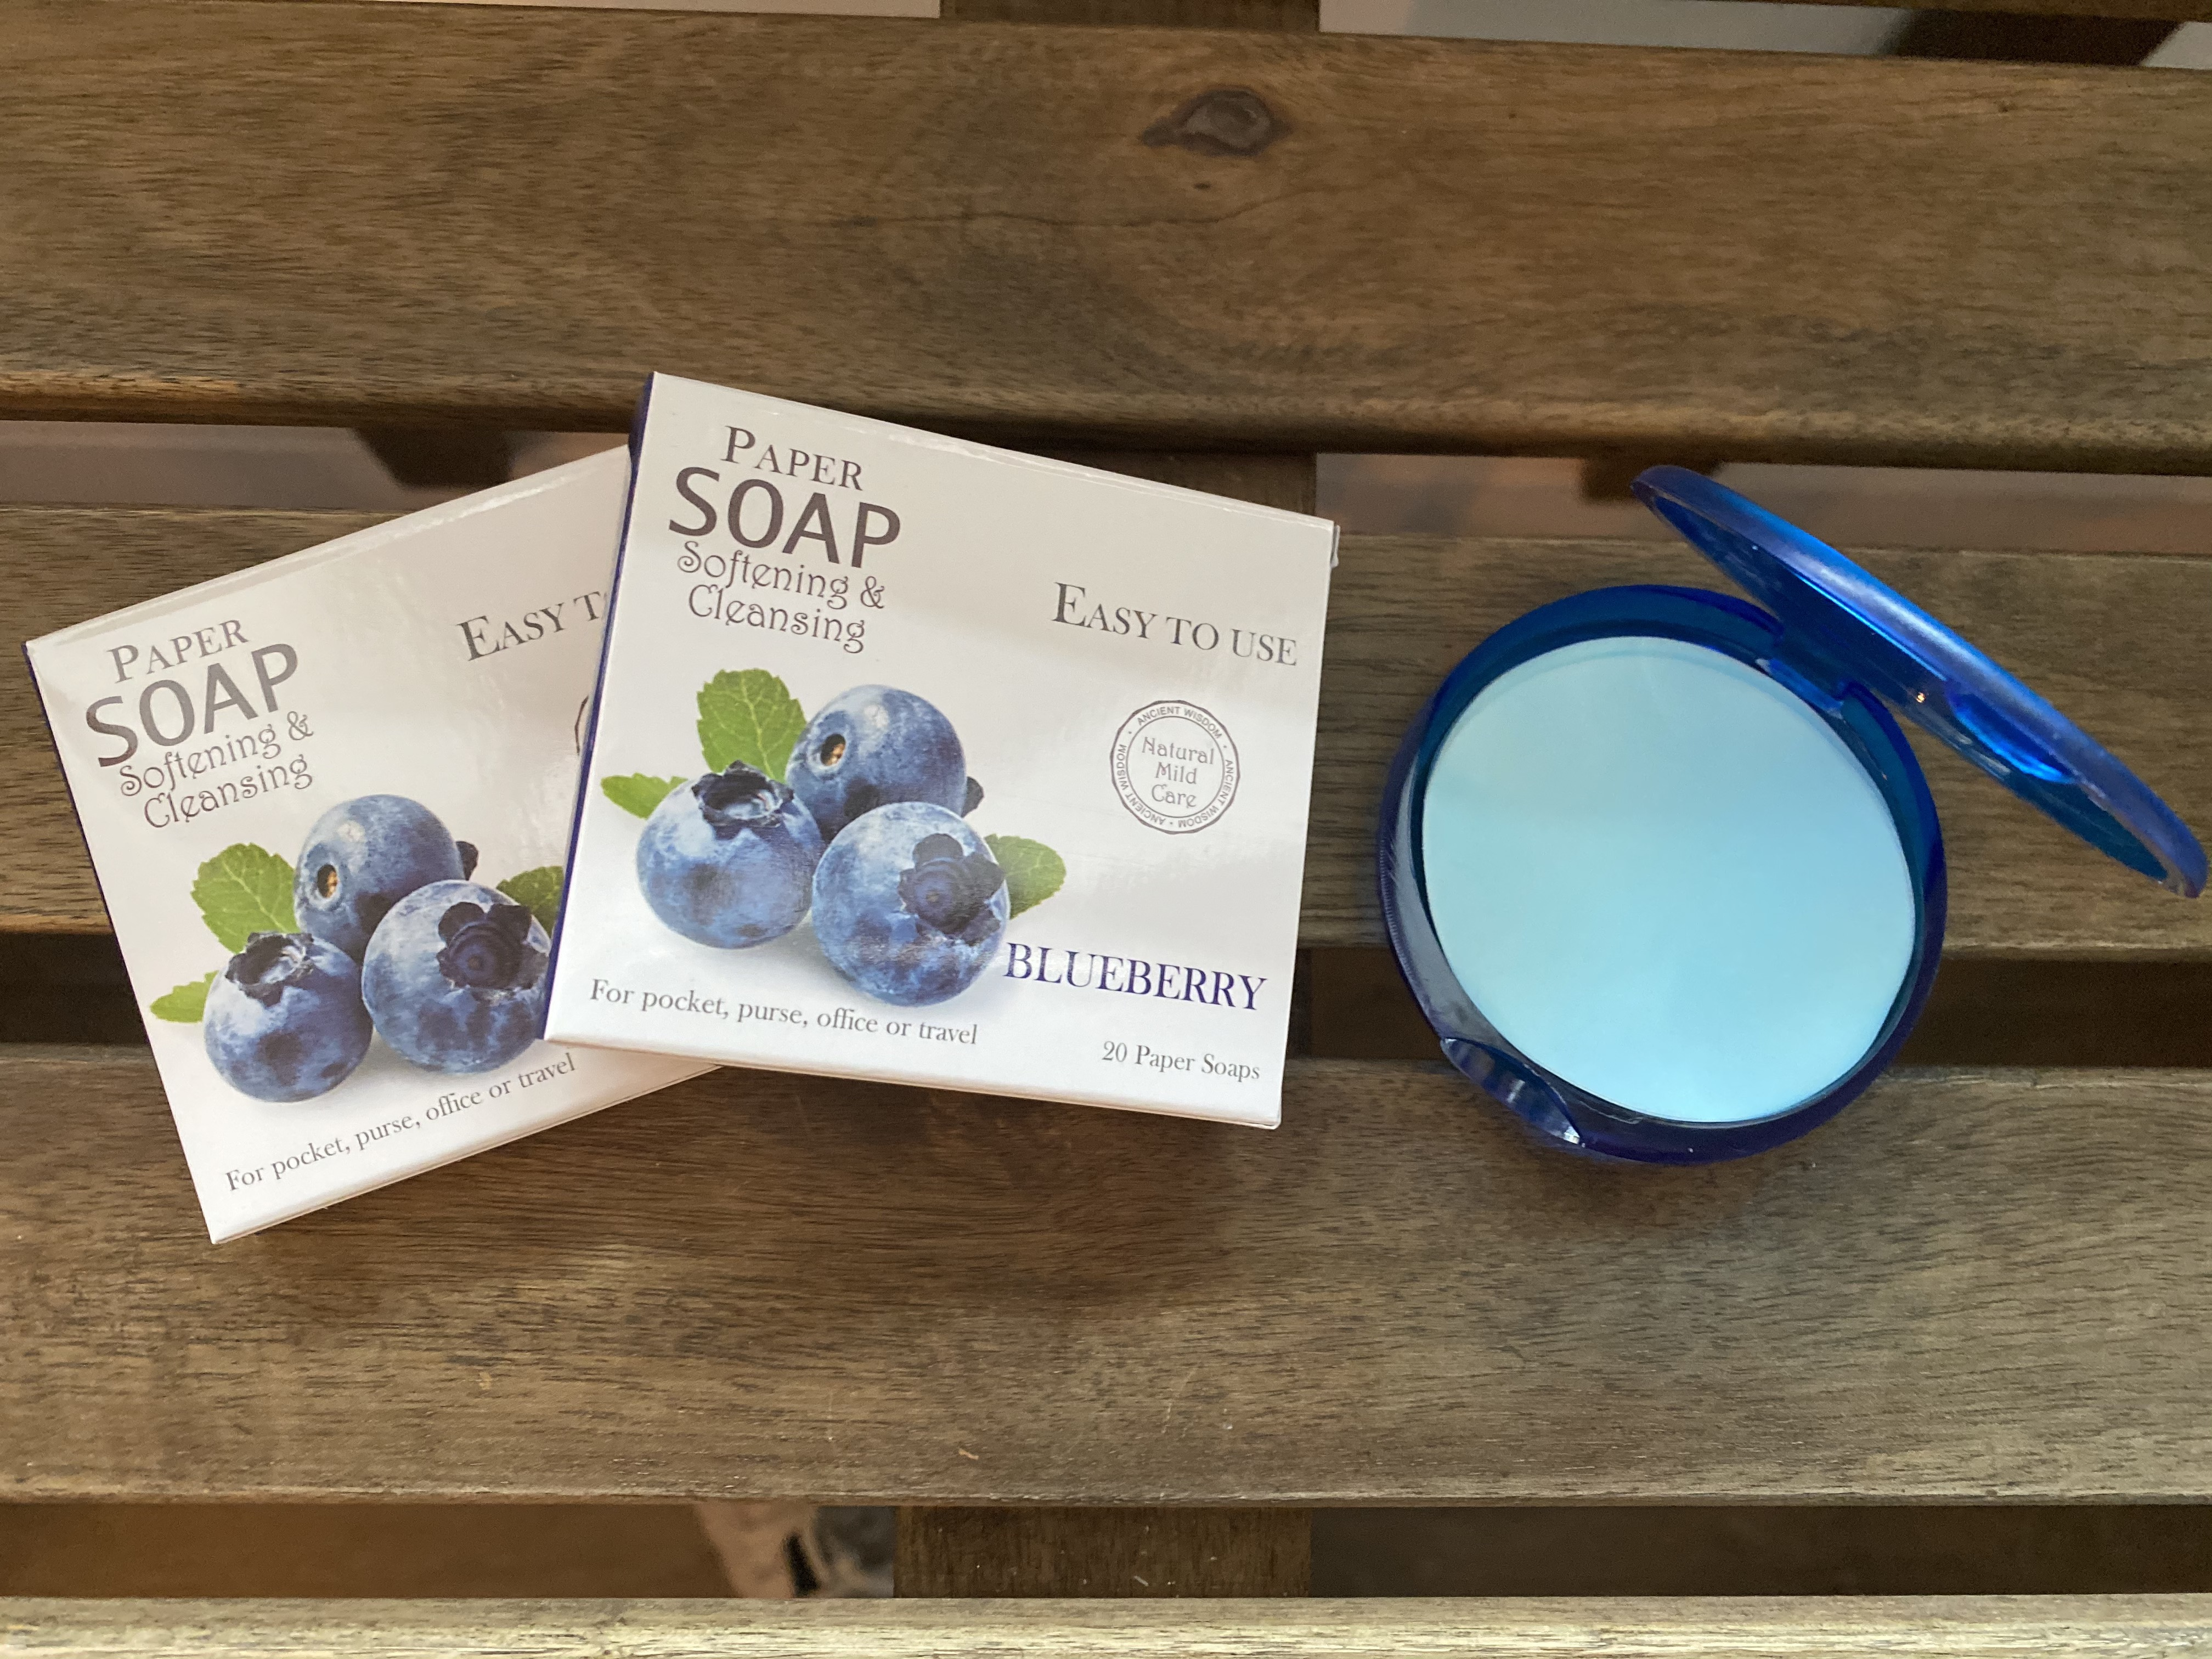 Paper Soap Blueberry